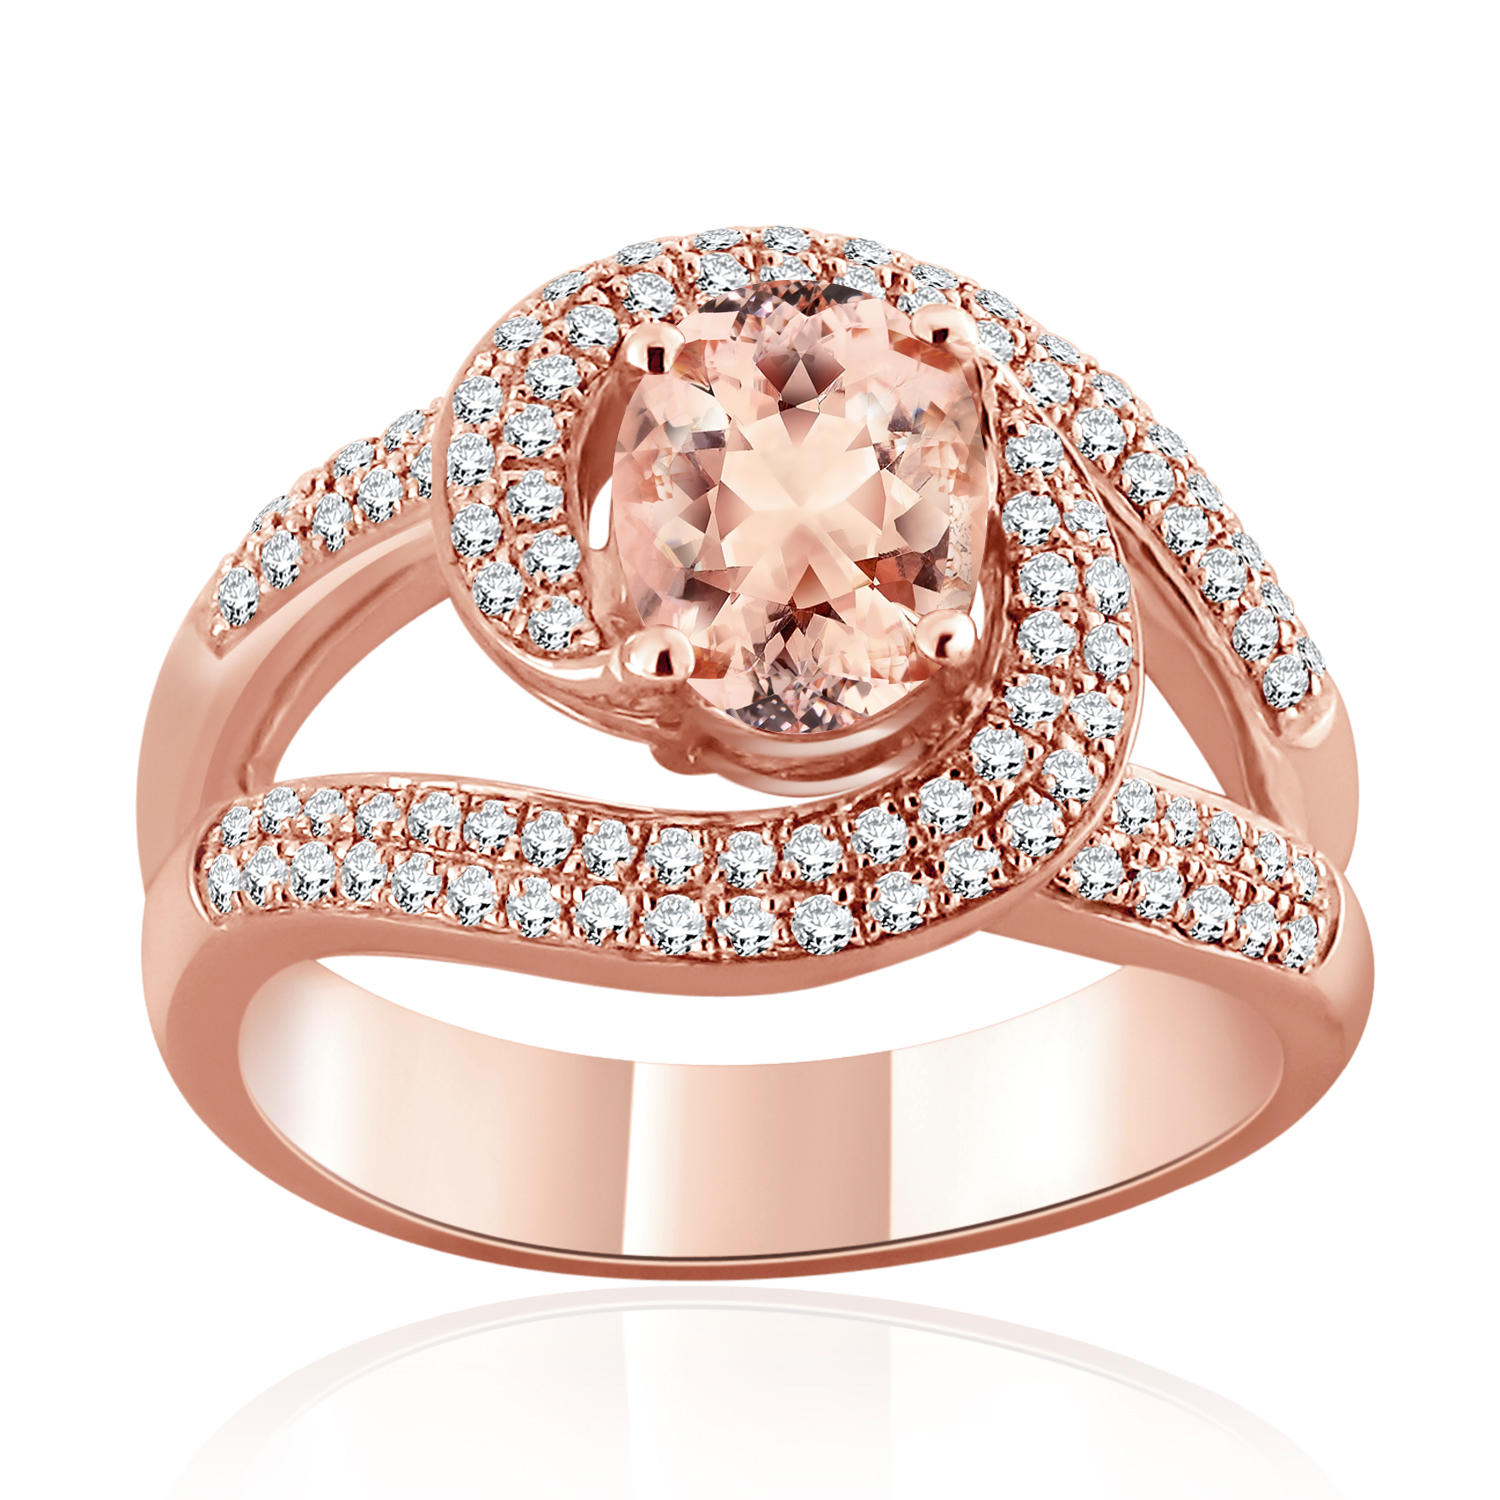 BAILEY Halo Swirl Morganite Engagement Ring In 14K Rose Gold With 1.00 Carat Oval Stone